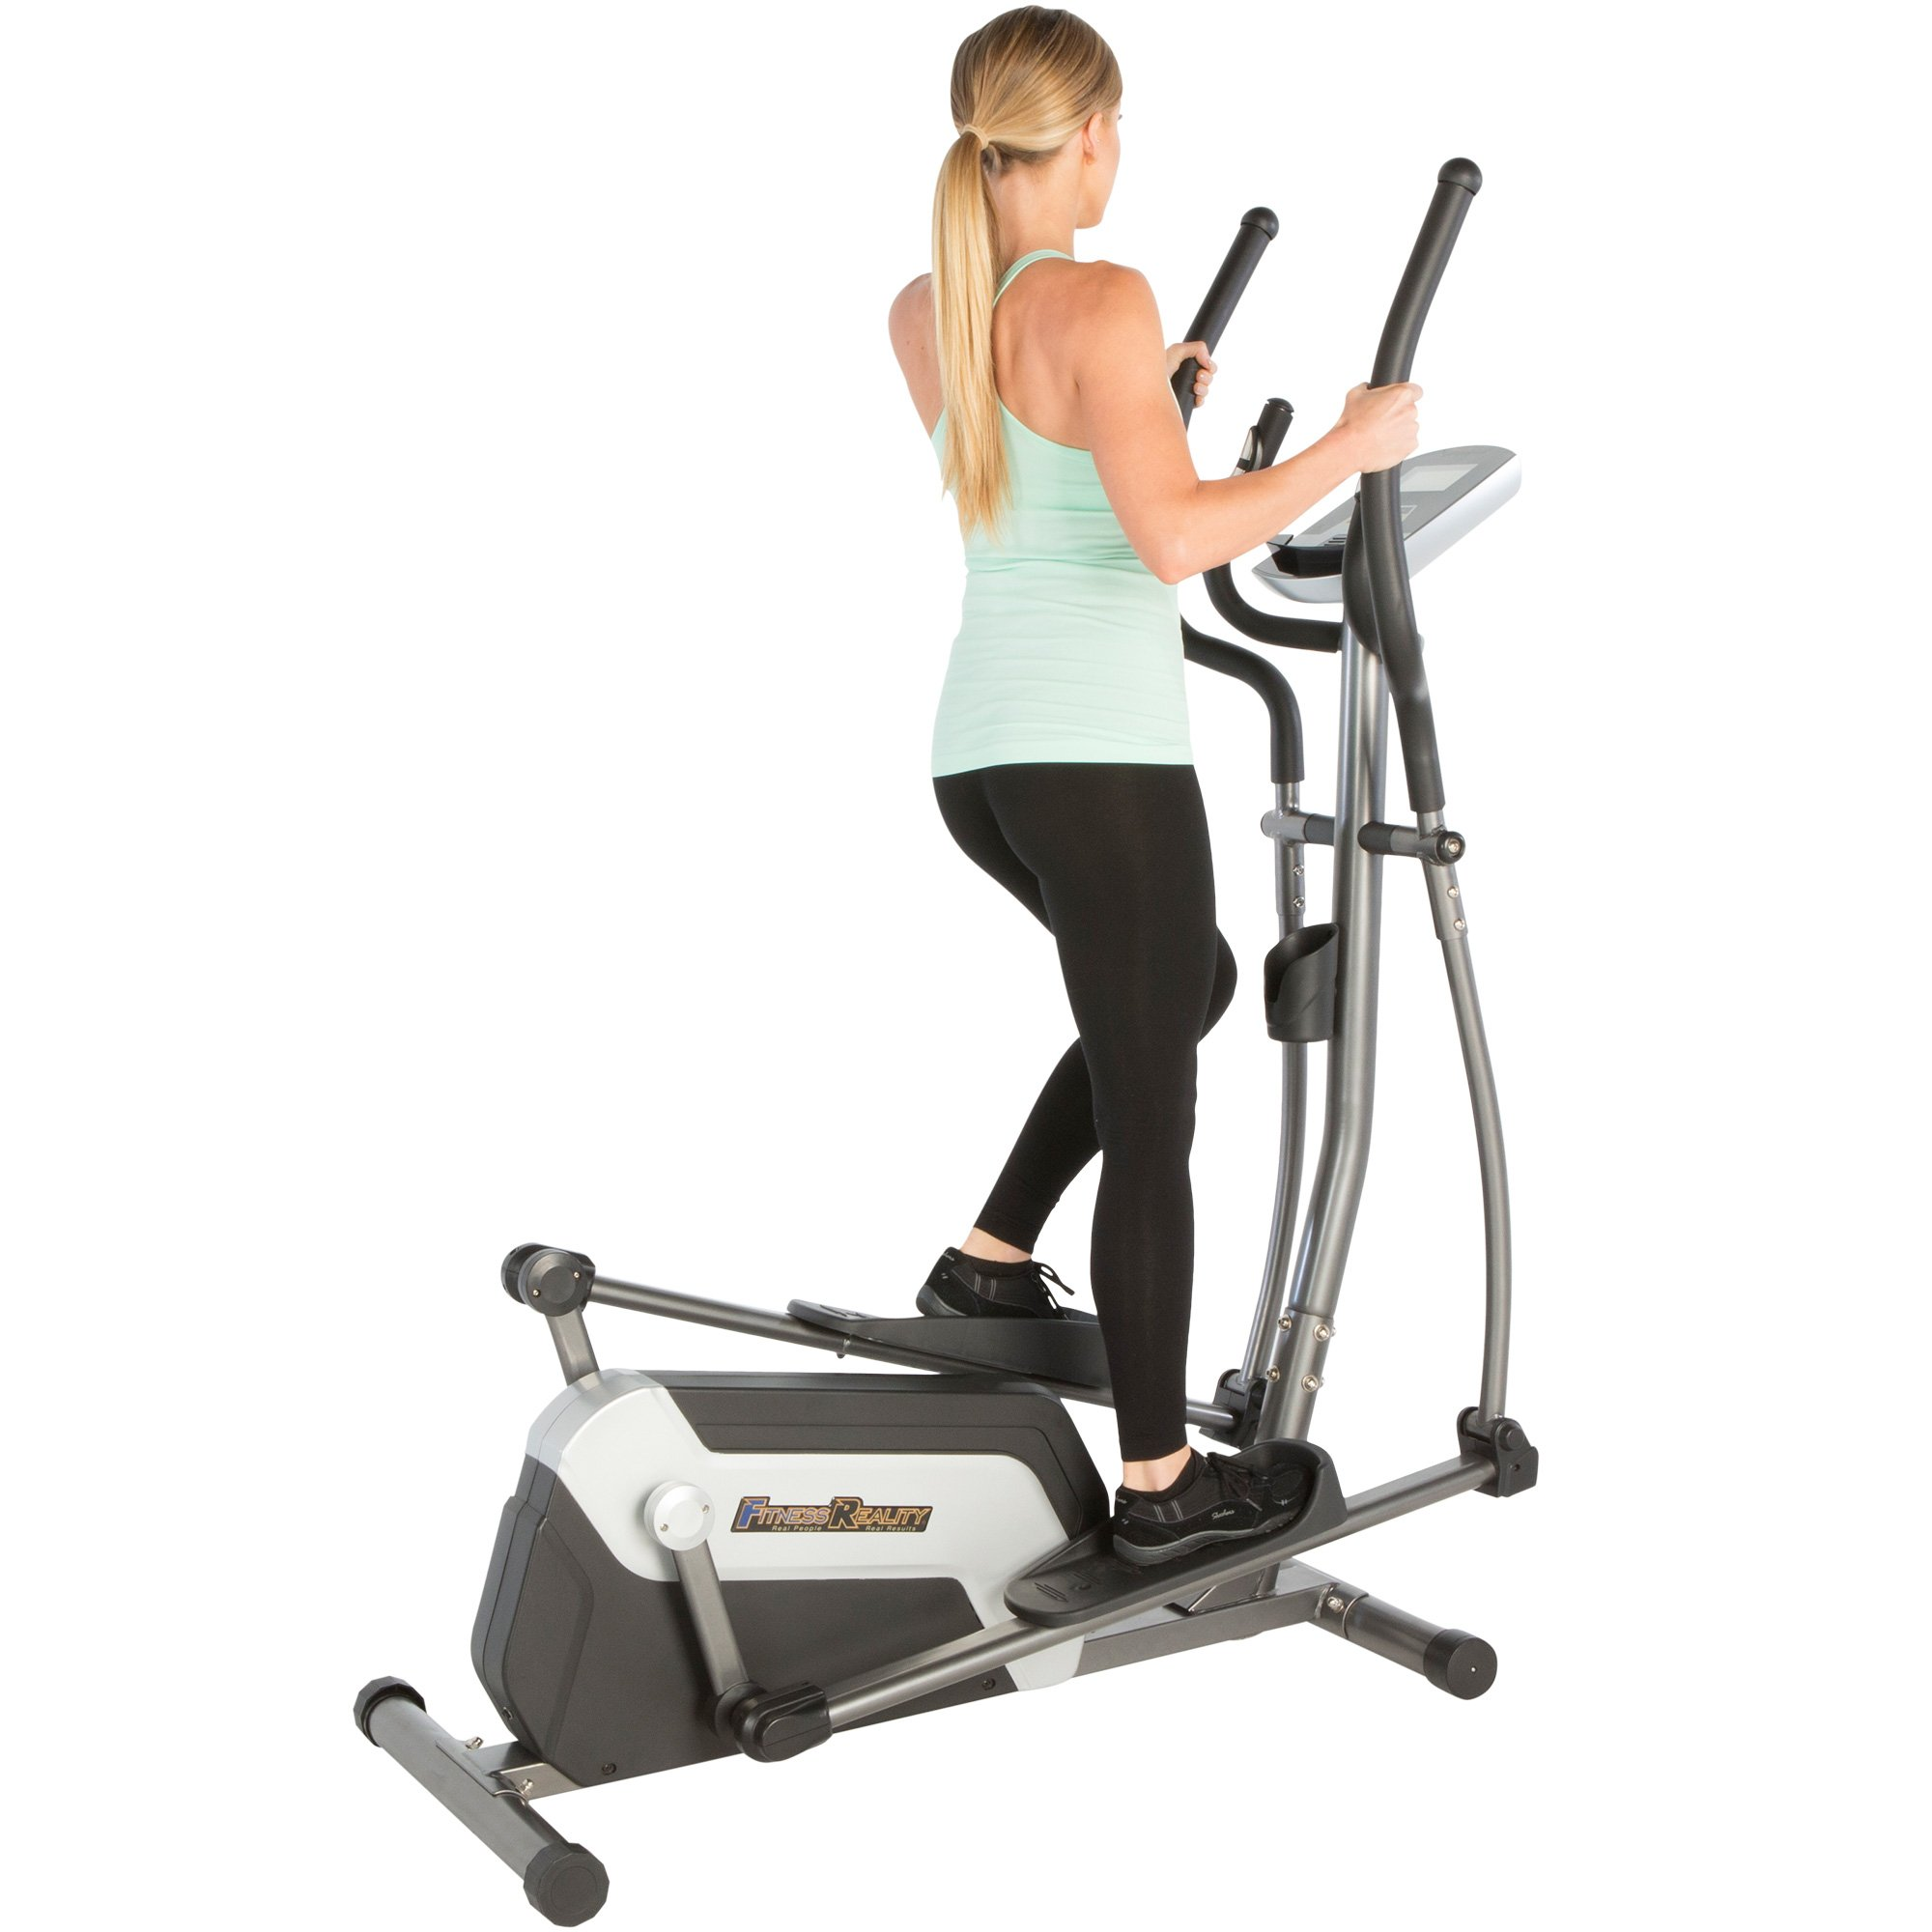 Fitness Reality E5500XL Magnetic Elliptical Trainer with Comfortable 18'' Stride by Fitness Reality (Image #14)